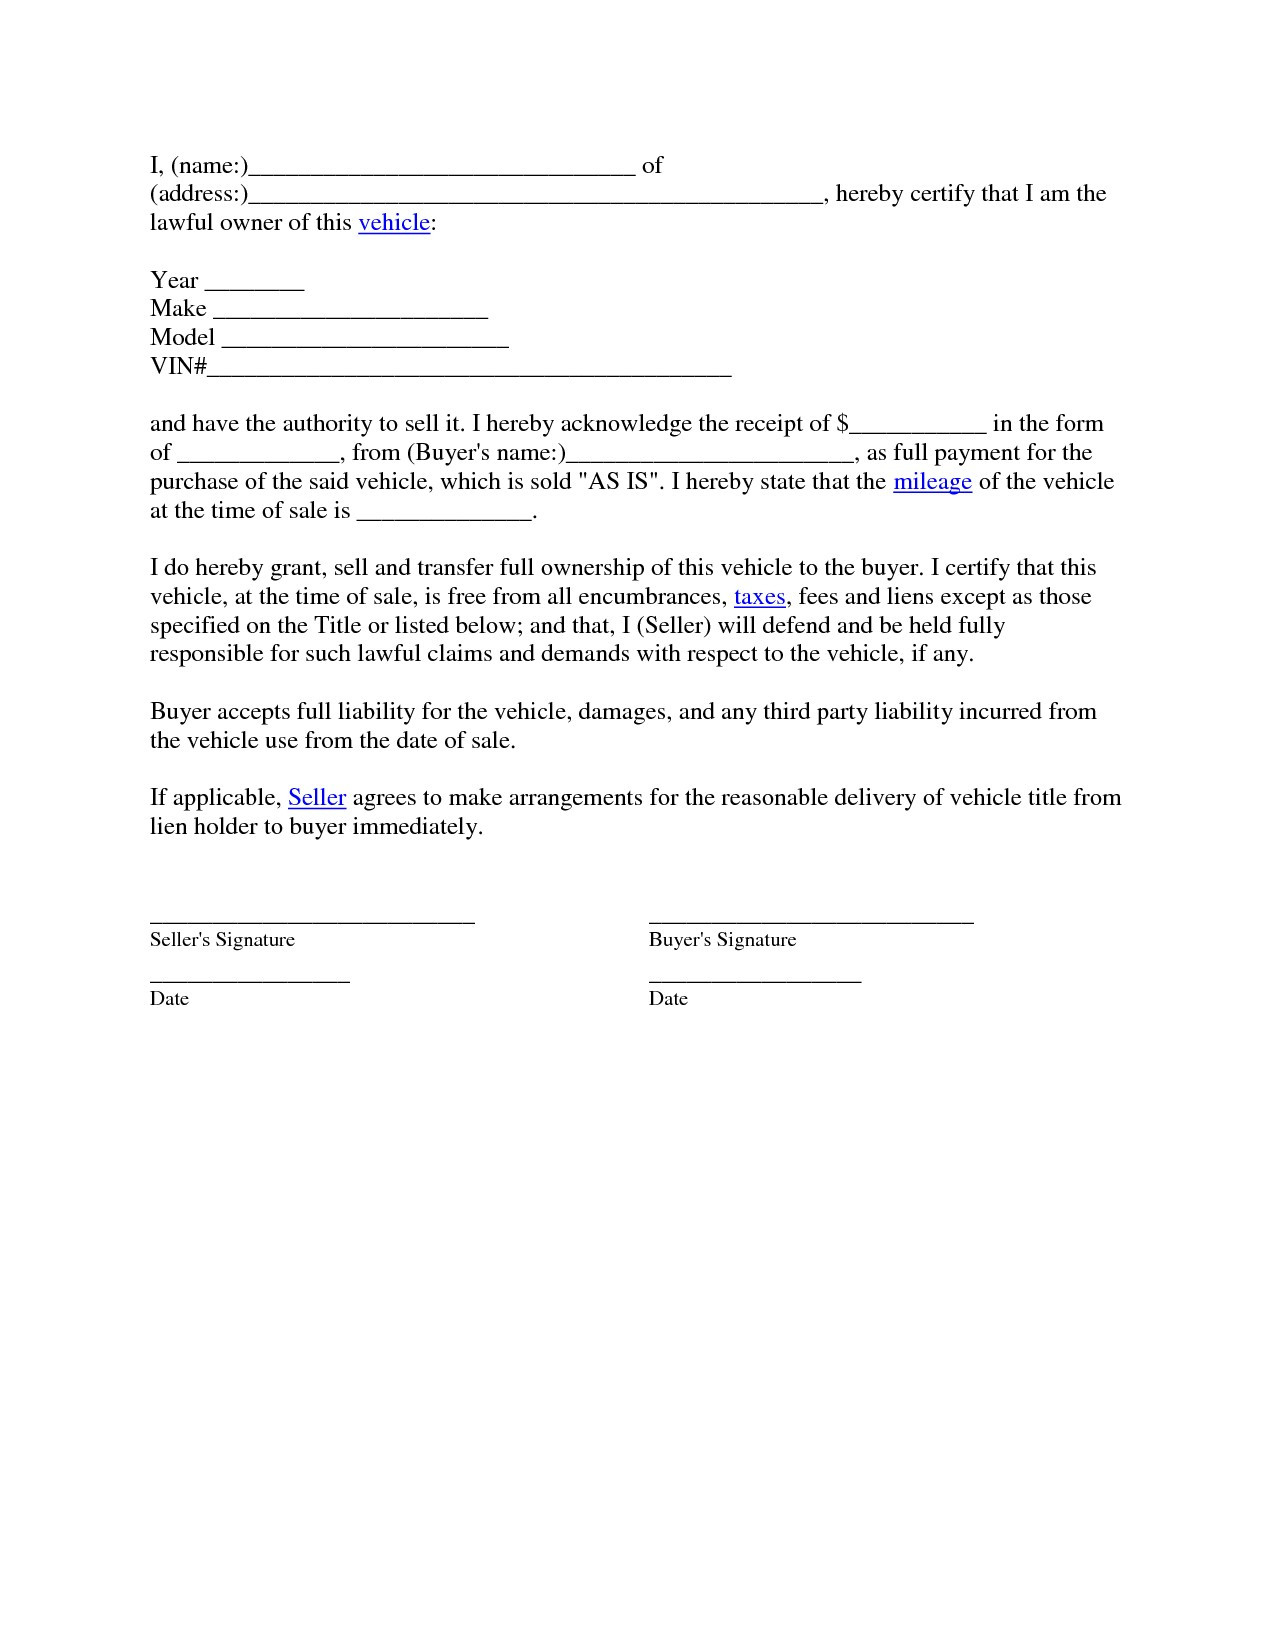 Independent Contractor Offer Letter Template - Fresh Memo Understanding Template